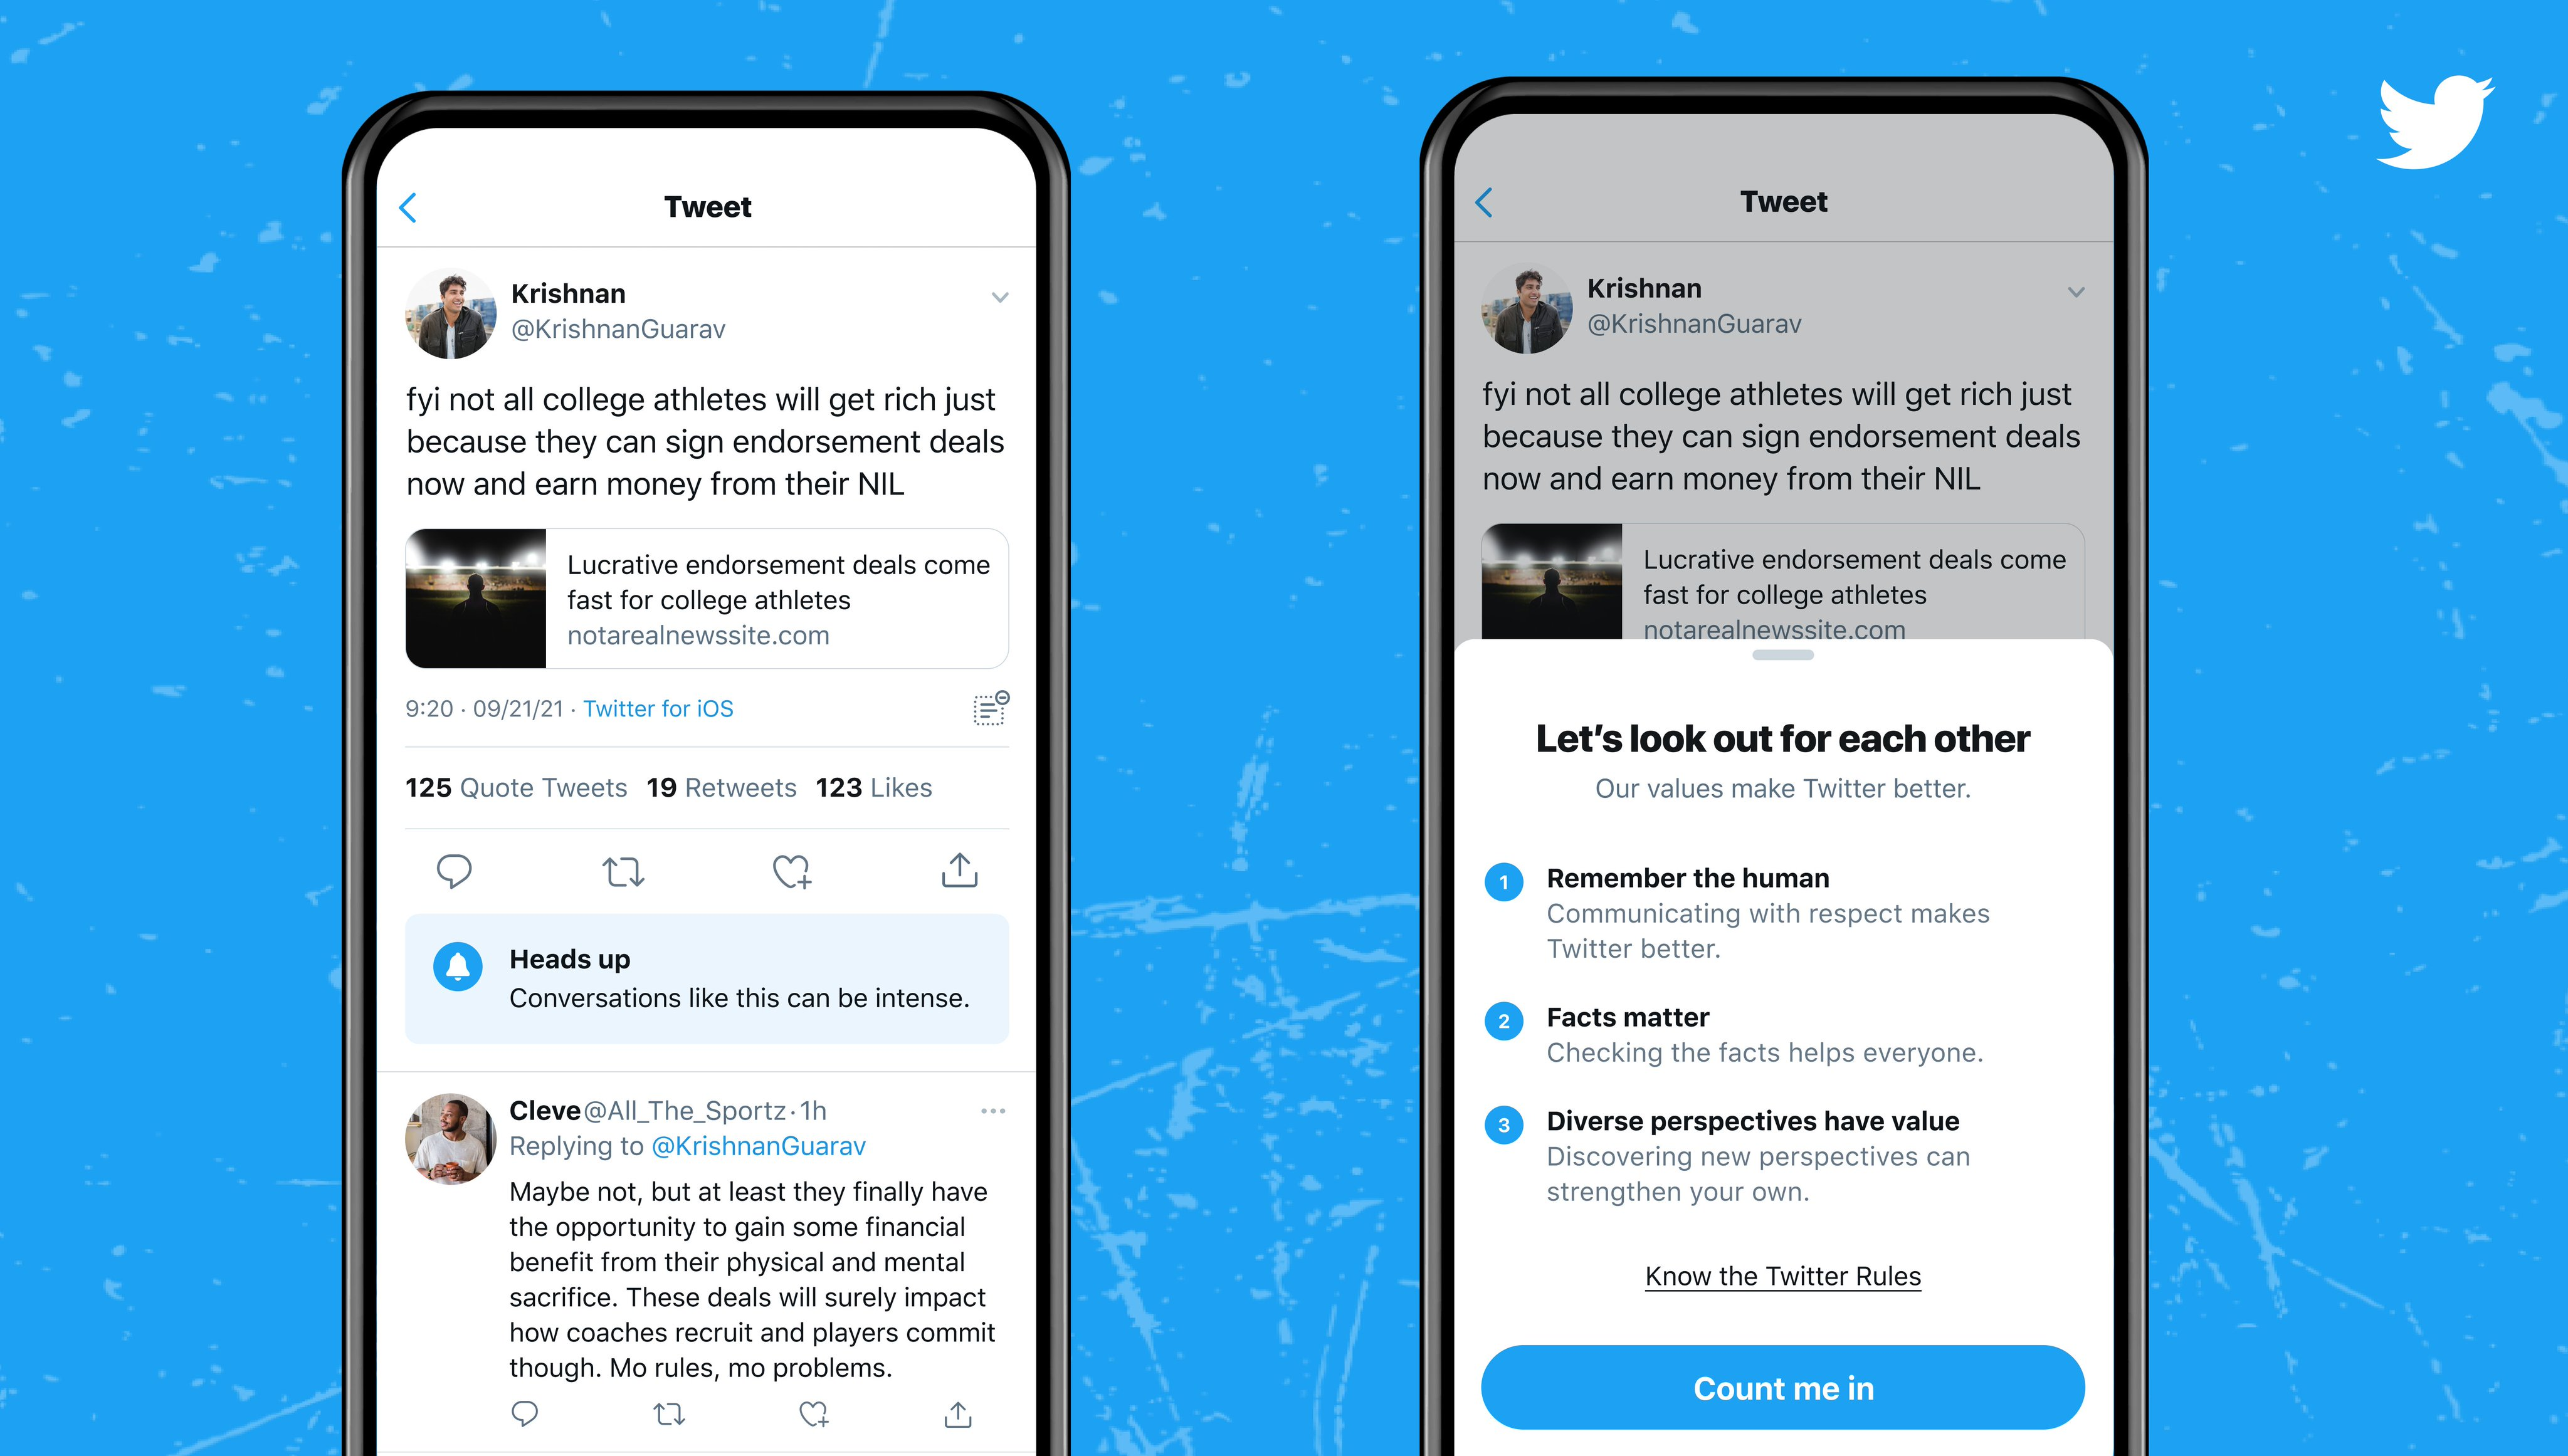 """Two images showing a Tweet on the app. The left image shows the Tweet with a label below it that reads, """"Heads up, conversations like this can be intense."""" The right image shows a prompt over the same Tweet with the headline, """"Let's look out for each other"""". It lists Twitter's values: remember the human, facts matter, and diverse perspectives have value, with a link to the Twitter Rules and a """"Count me in"""" button."""